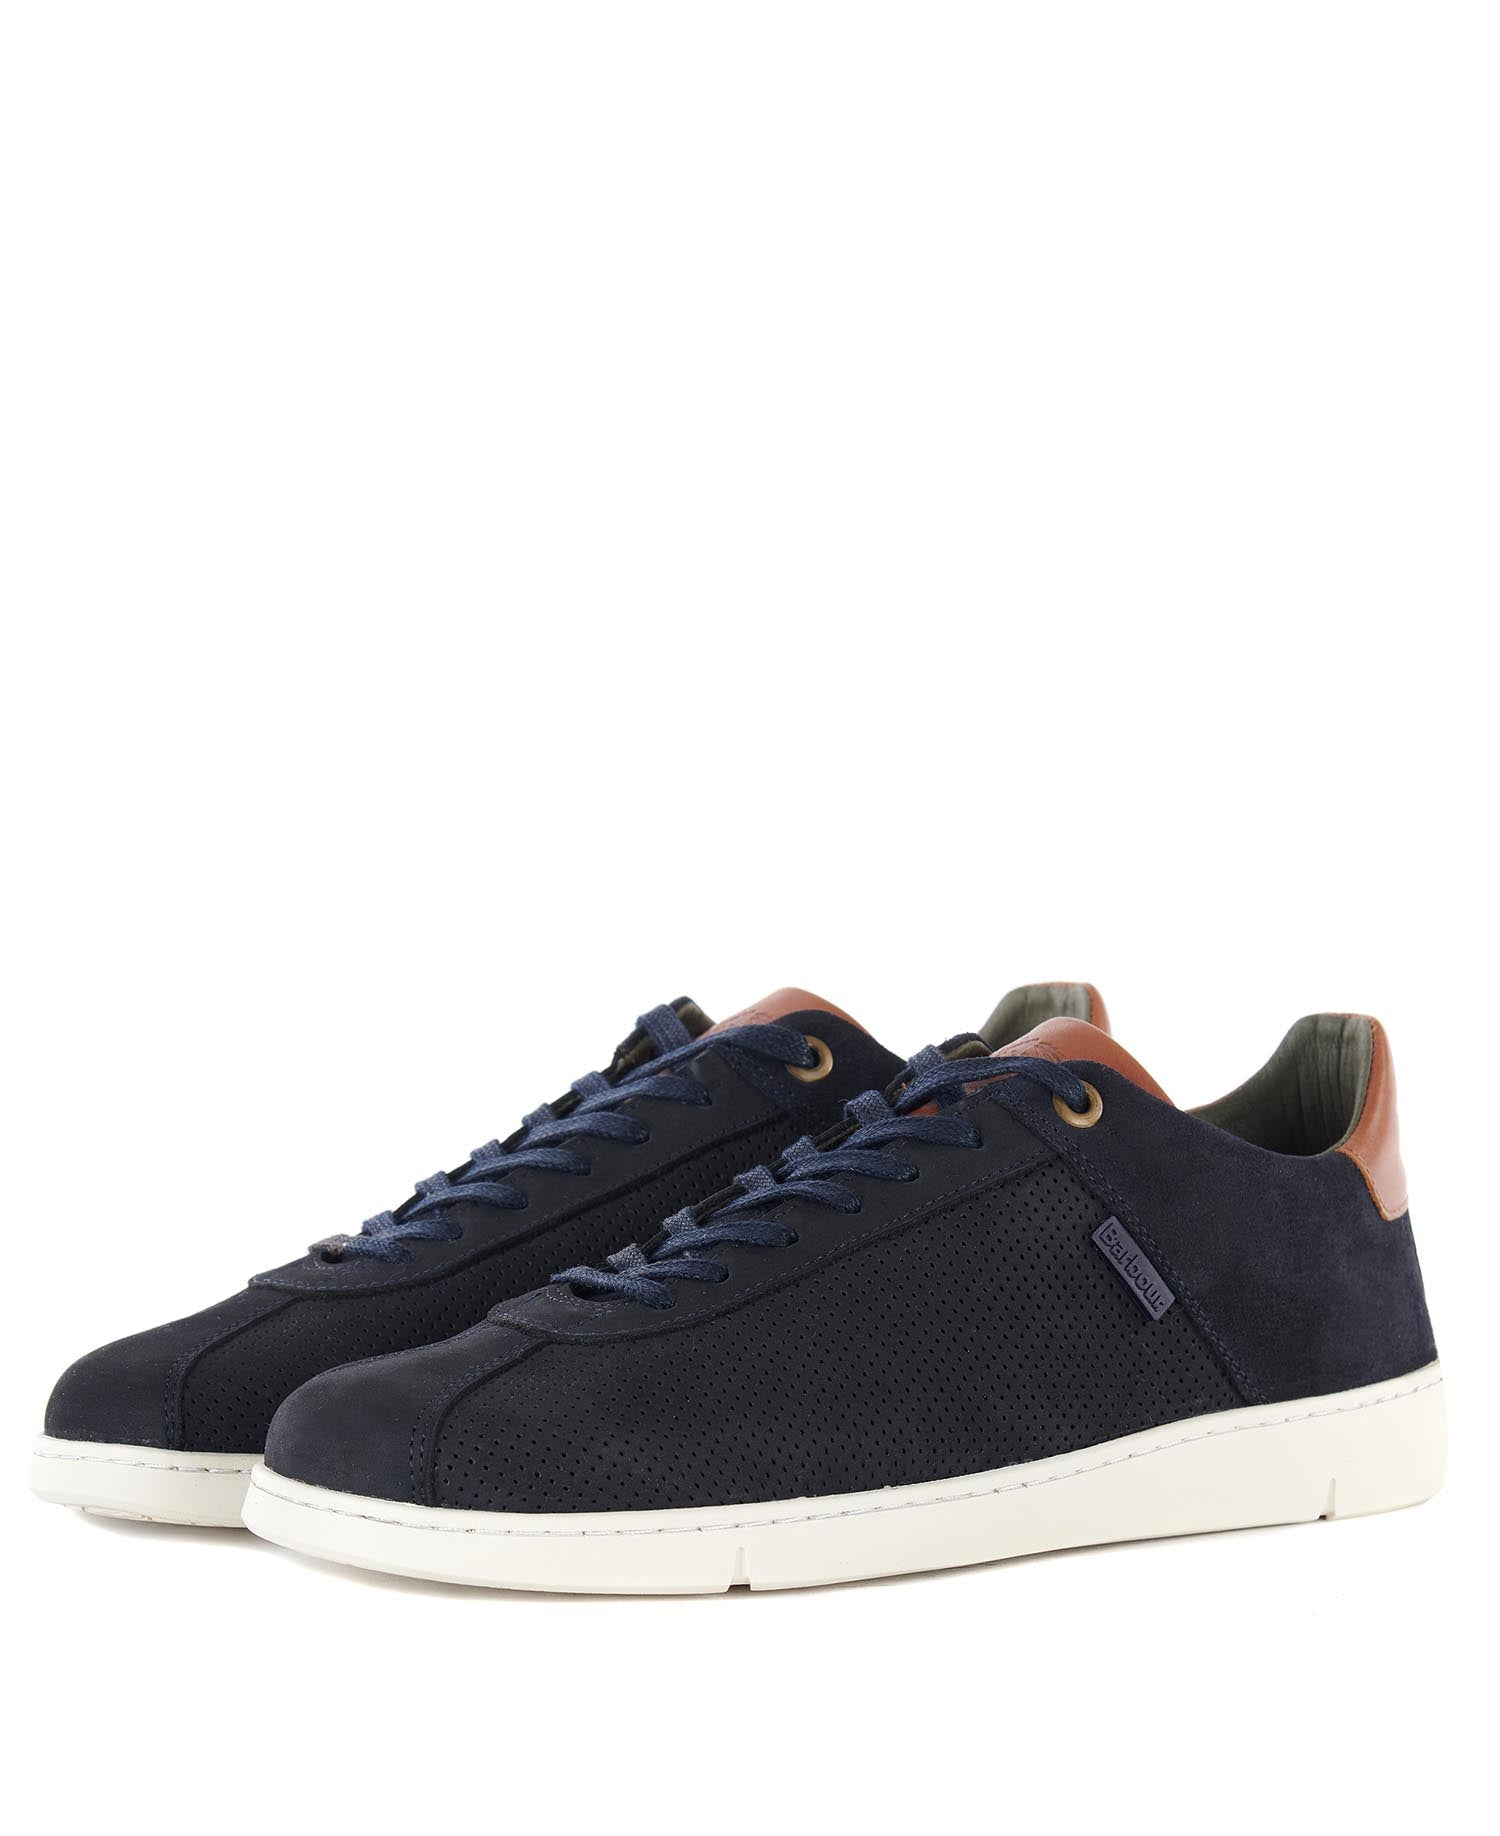 BARBOUR BUSHTAIL Navy Shoes MFO0539NY12 - 7clothing